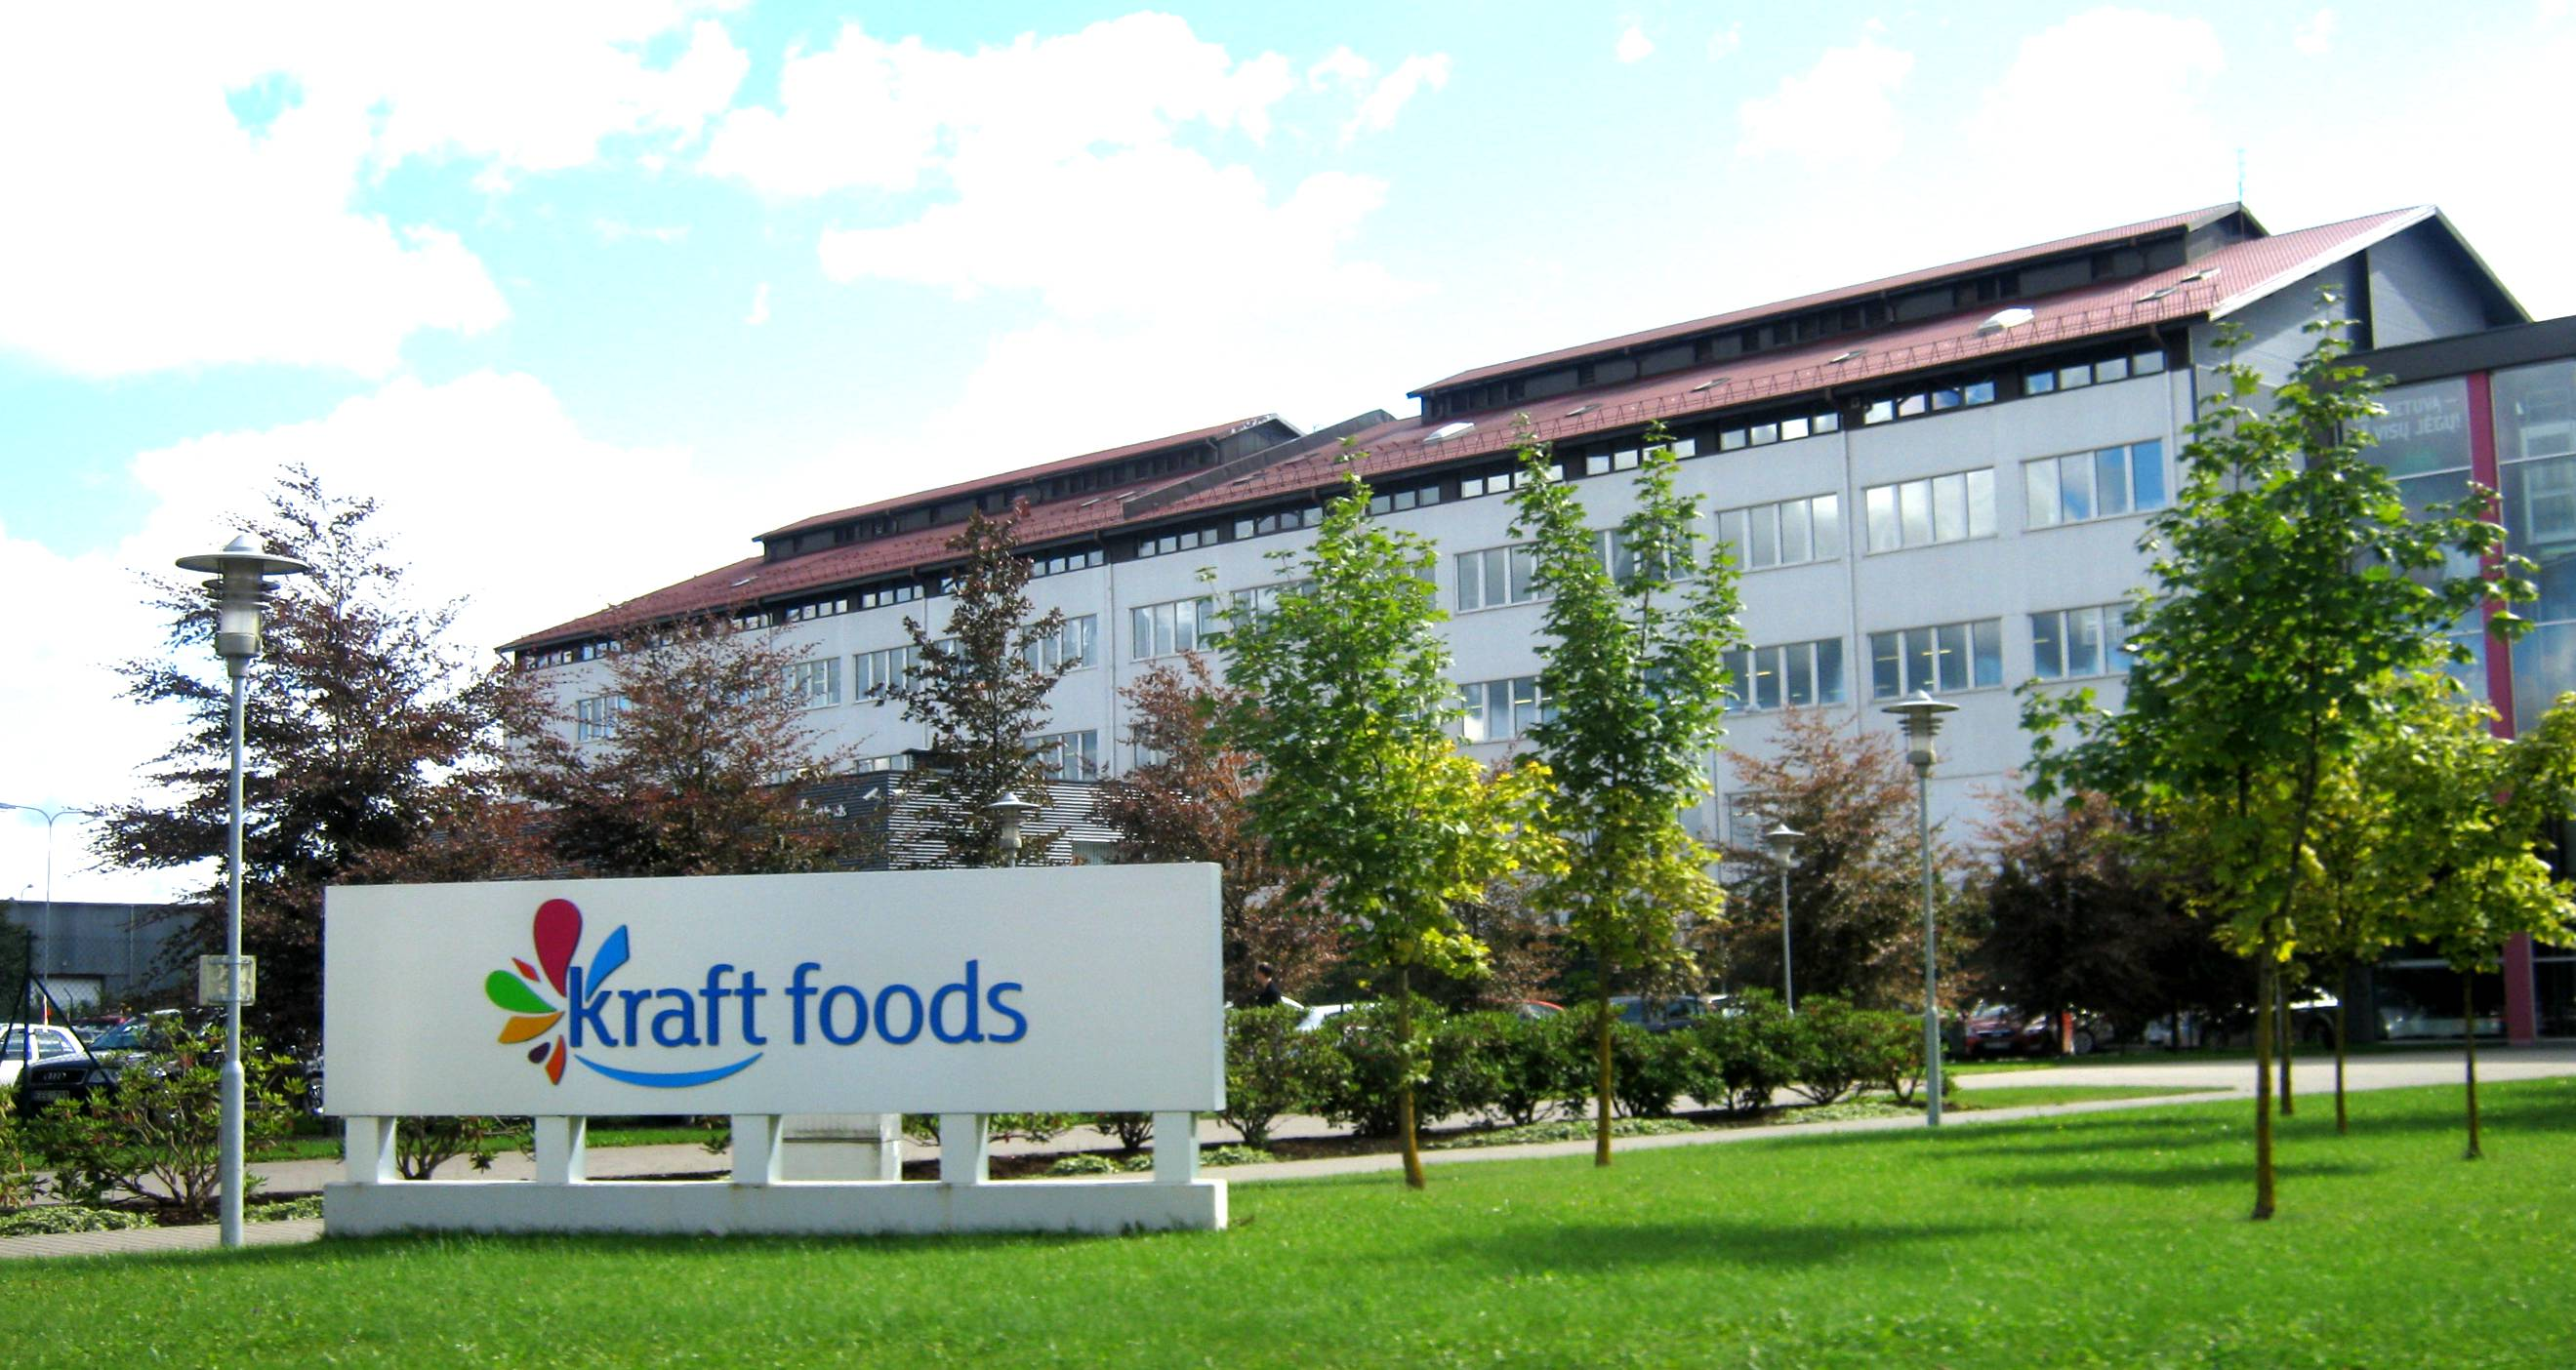 kraft foods case study Kraft food's fight against obesity - kraft foods, the case examines the growing impact of junk foods on american society it examines the role played by food.